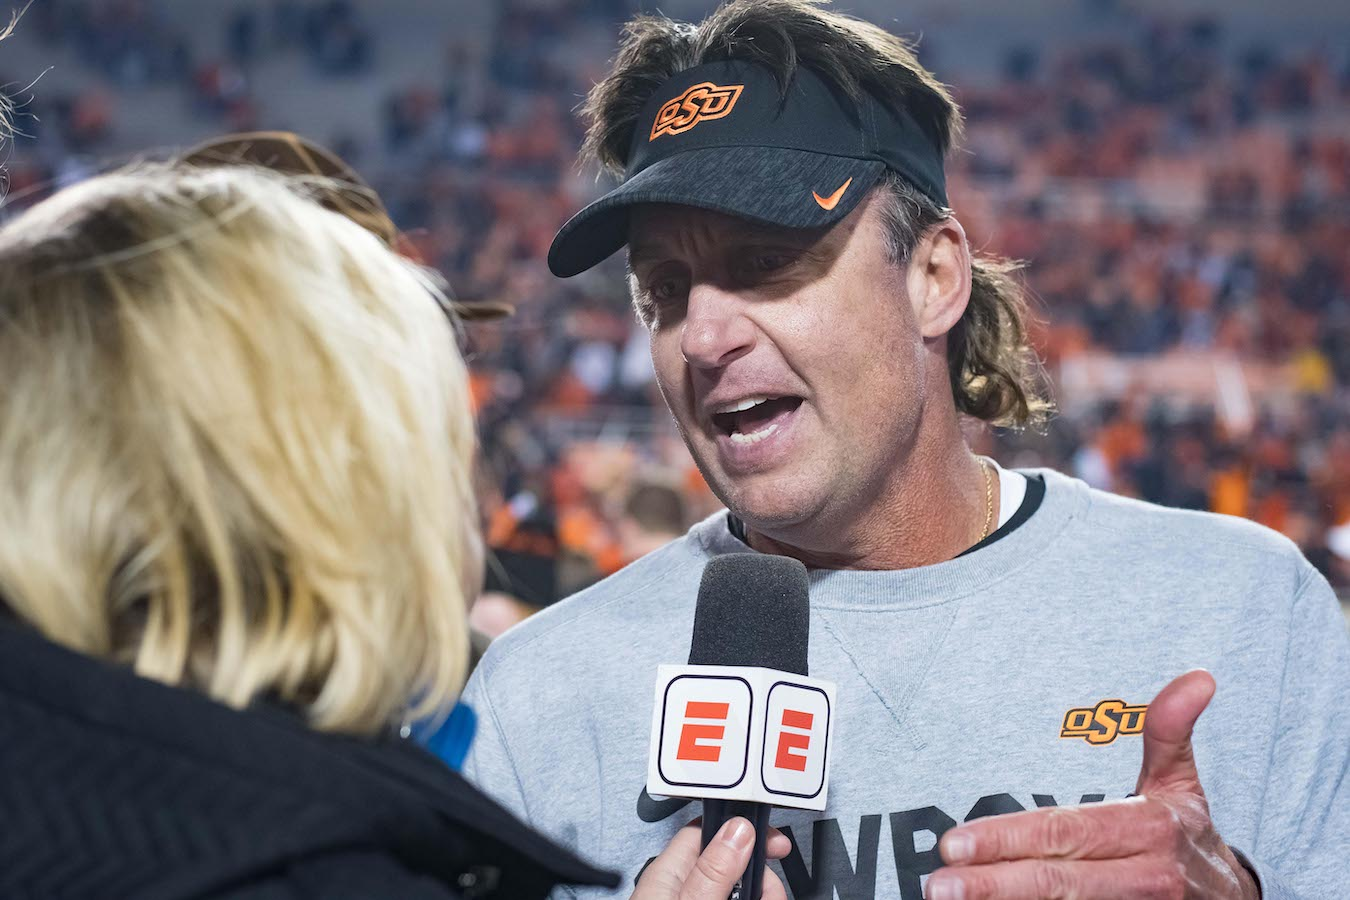 Why Mike Gundy Has New Life as a Coach and is Excited About the 2019 Season